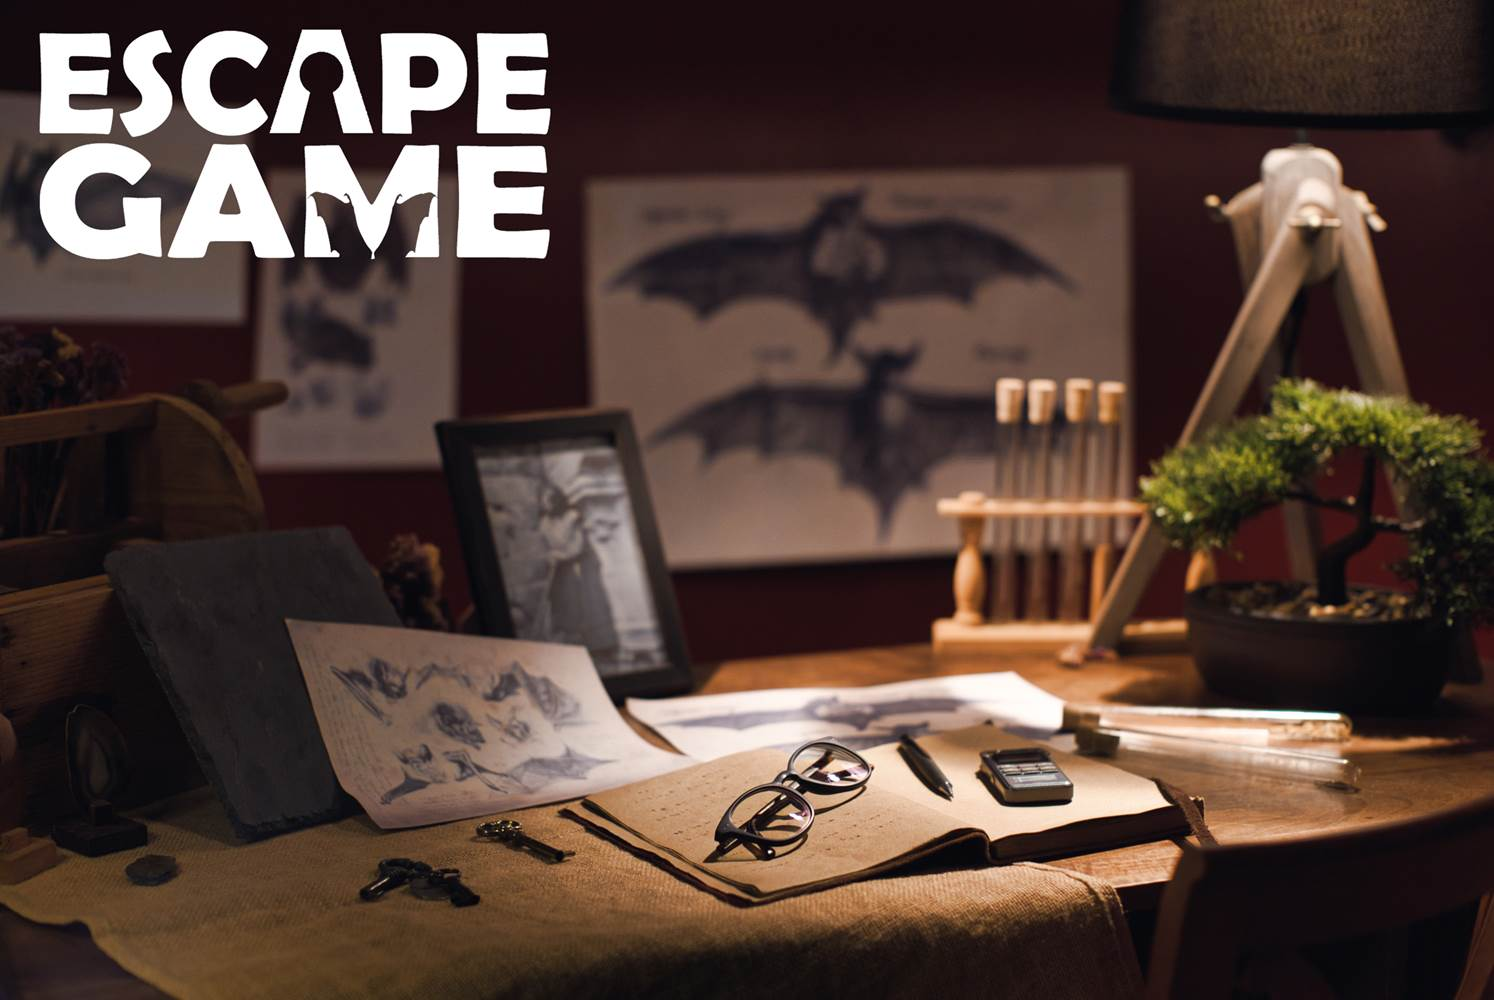 Escape Game Moulin Neuf Aventure - Rochefort-en-Terre © Escape Yourself/Rochefort-en-Terre Tourisme